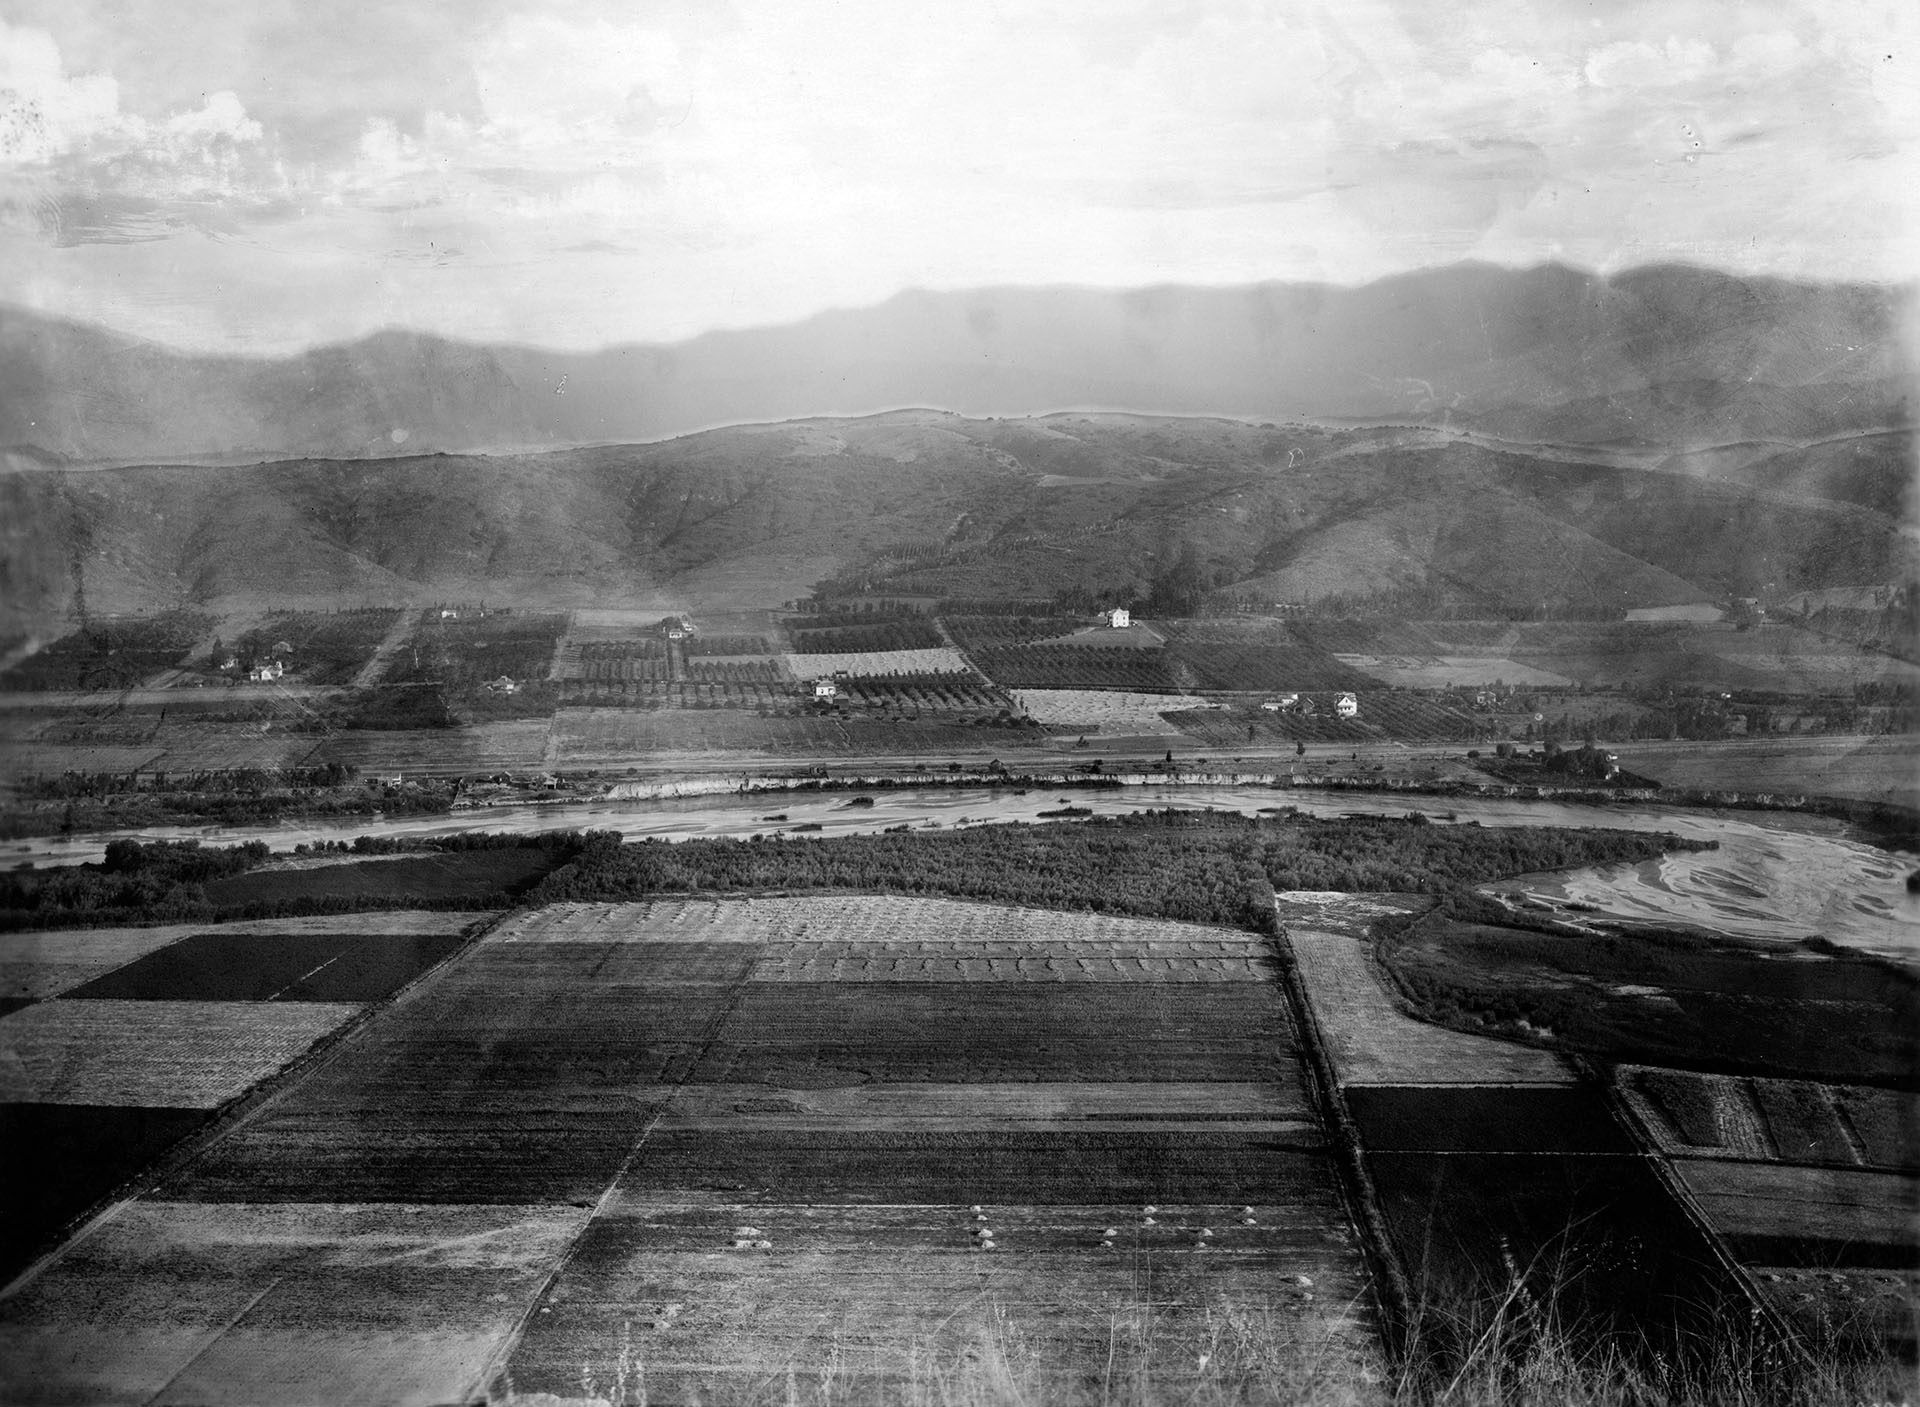 Farmland and the Los Angeles River looking north from Elysian Park toward Mount Washington, 1895-1915